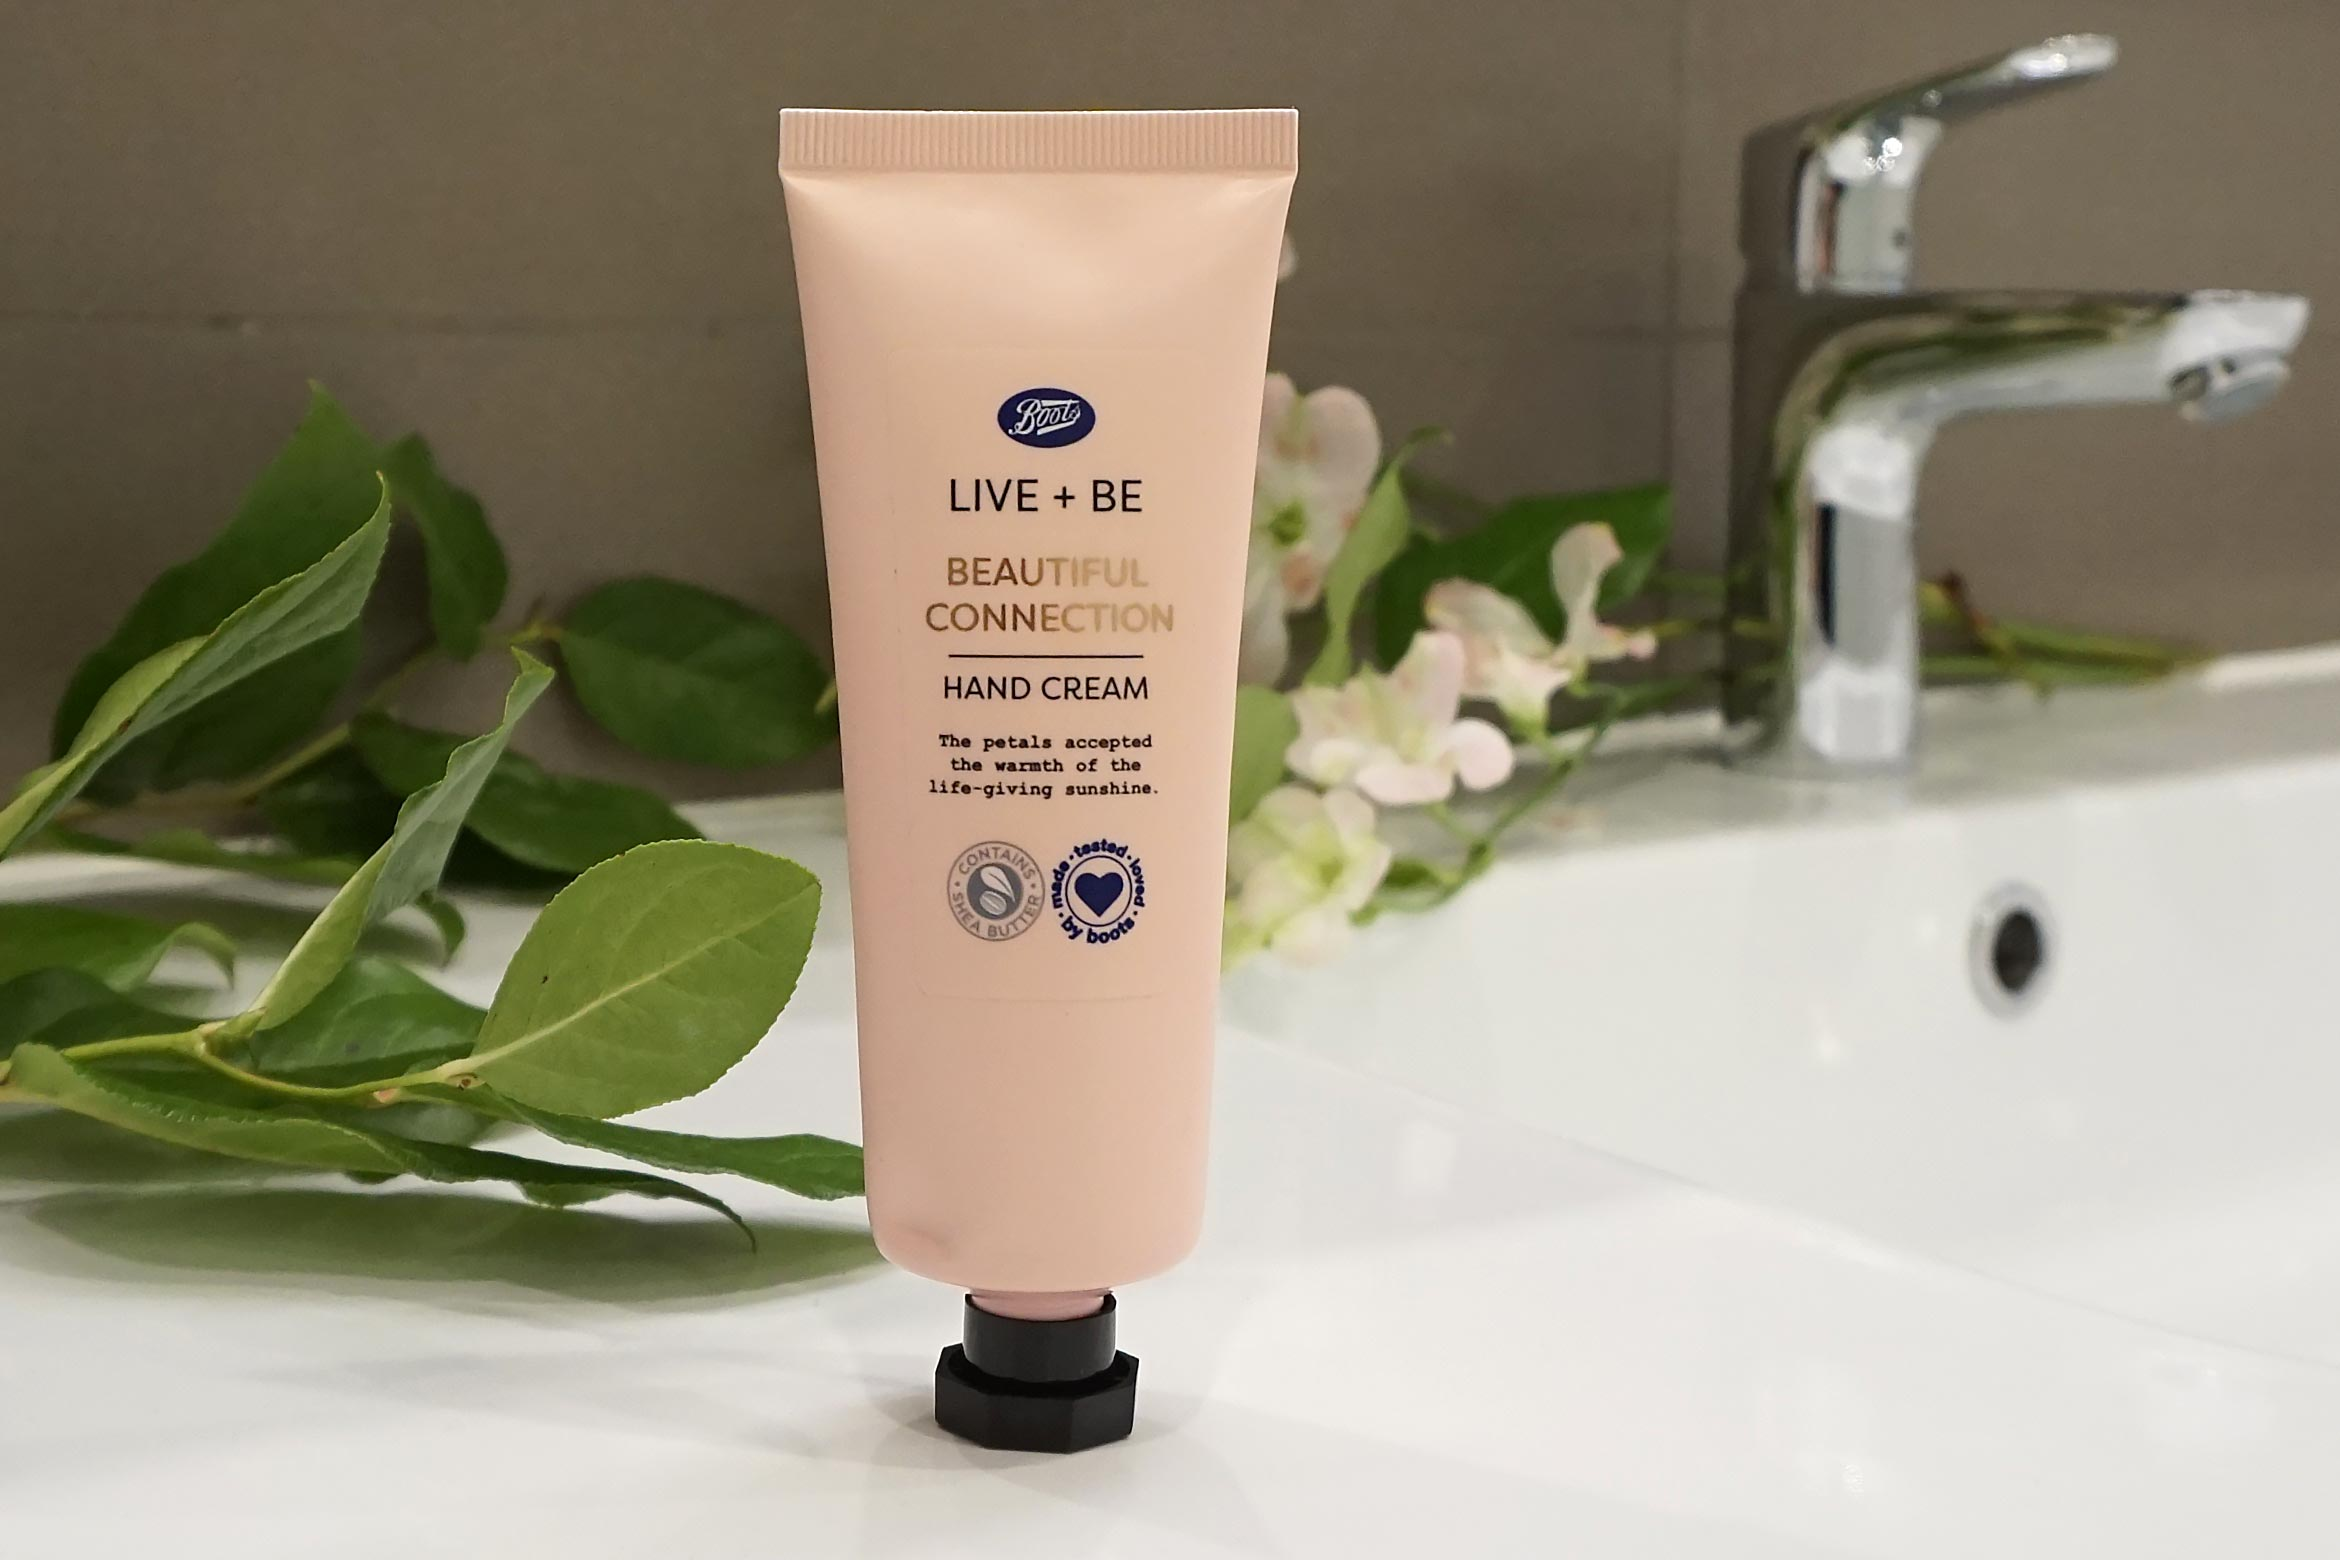 boots-live-be-beautiful-connection-hand-cream-review